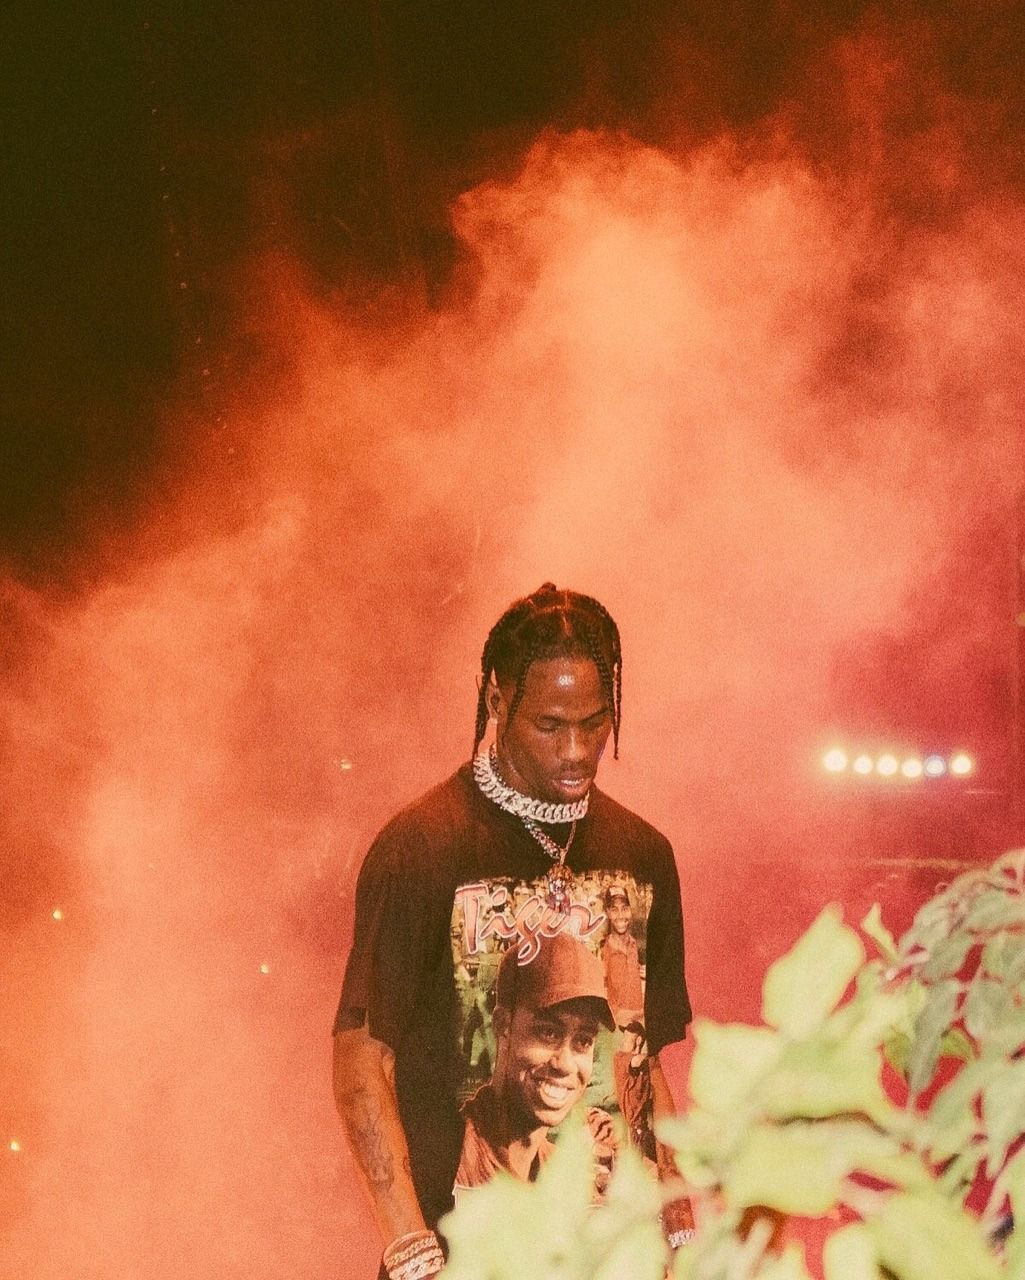 Travisscottwallpapers Travis Scott Wallpapers Travis Scott Rap Wallpaper